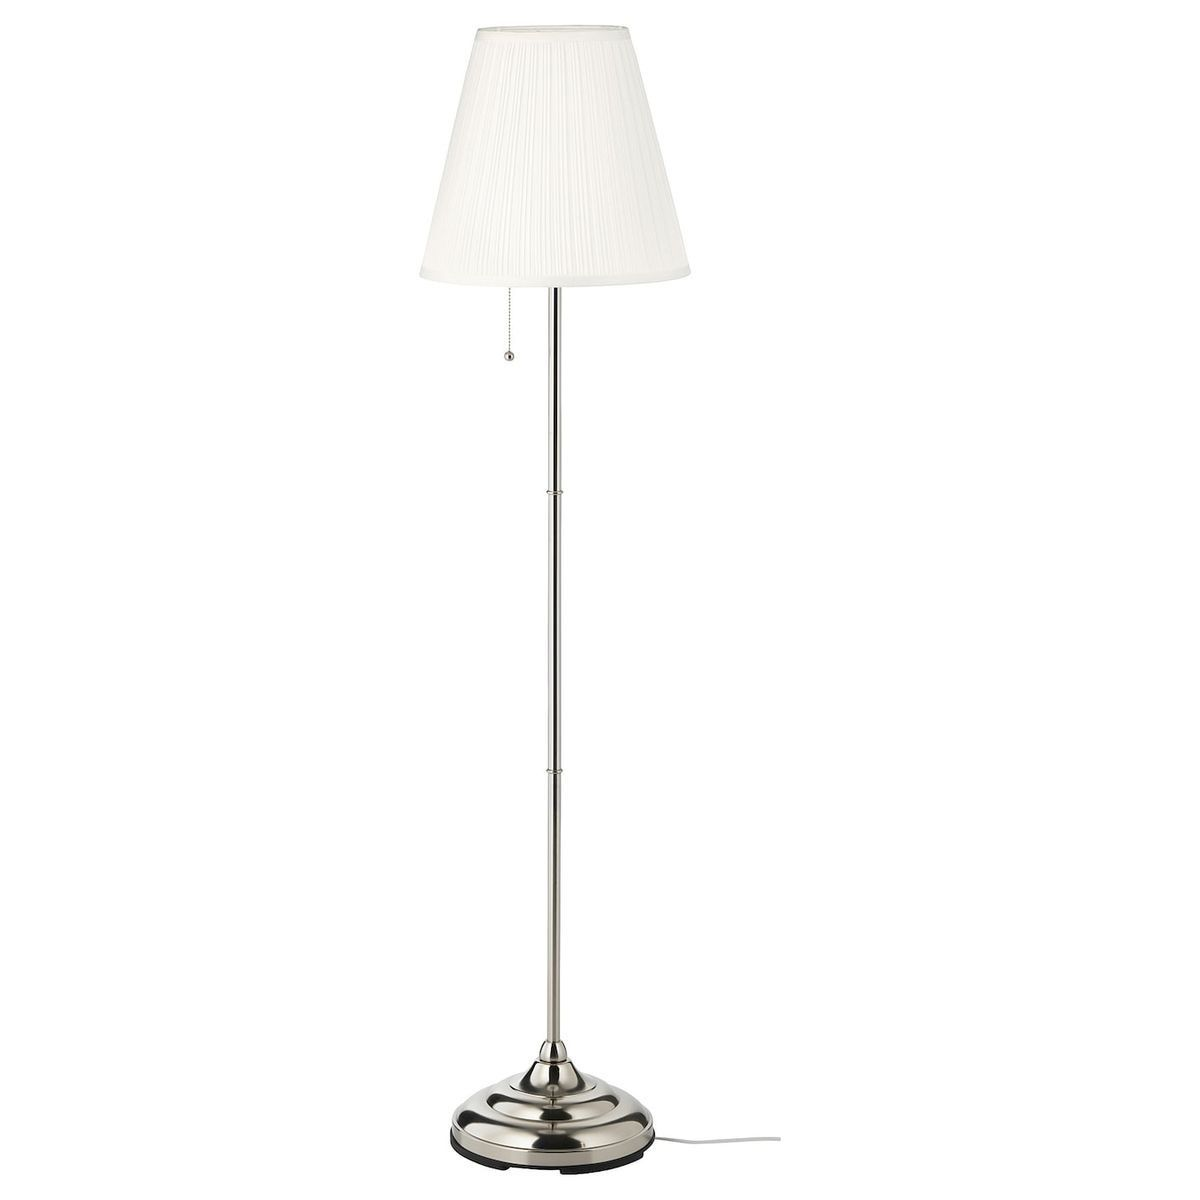 Pin By Nancy Beaule On Chambre A Coucher In 2020 Floor Lamp Lamp Ikea Lighting